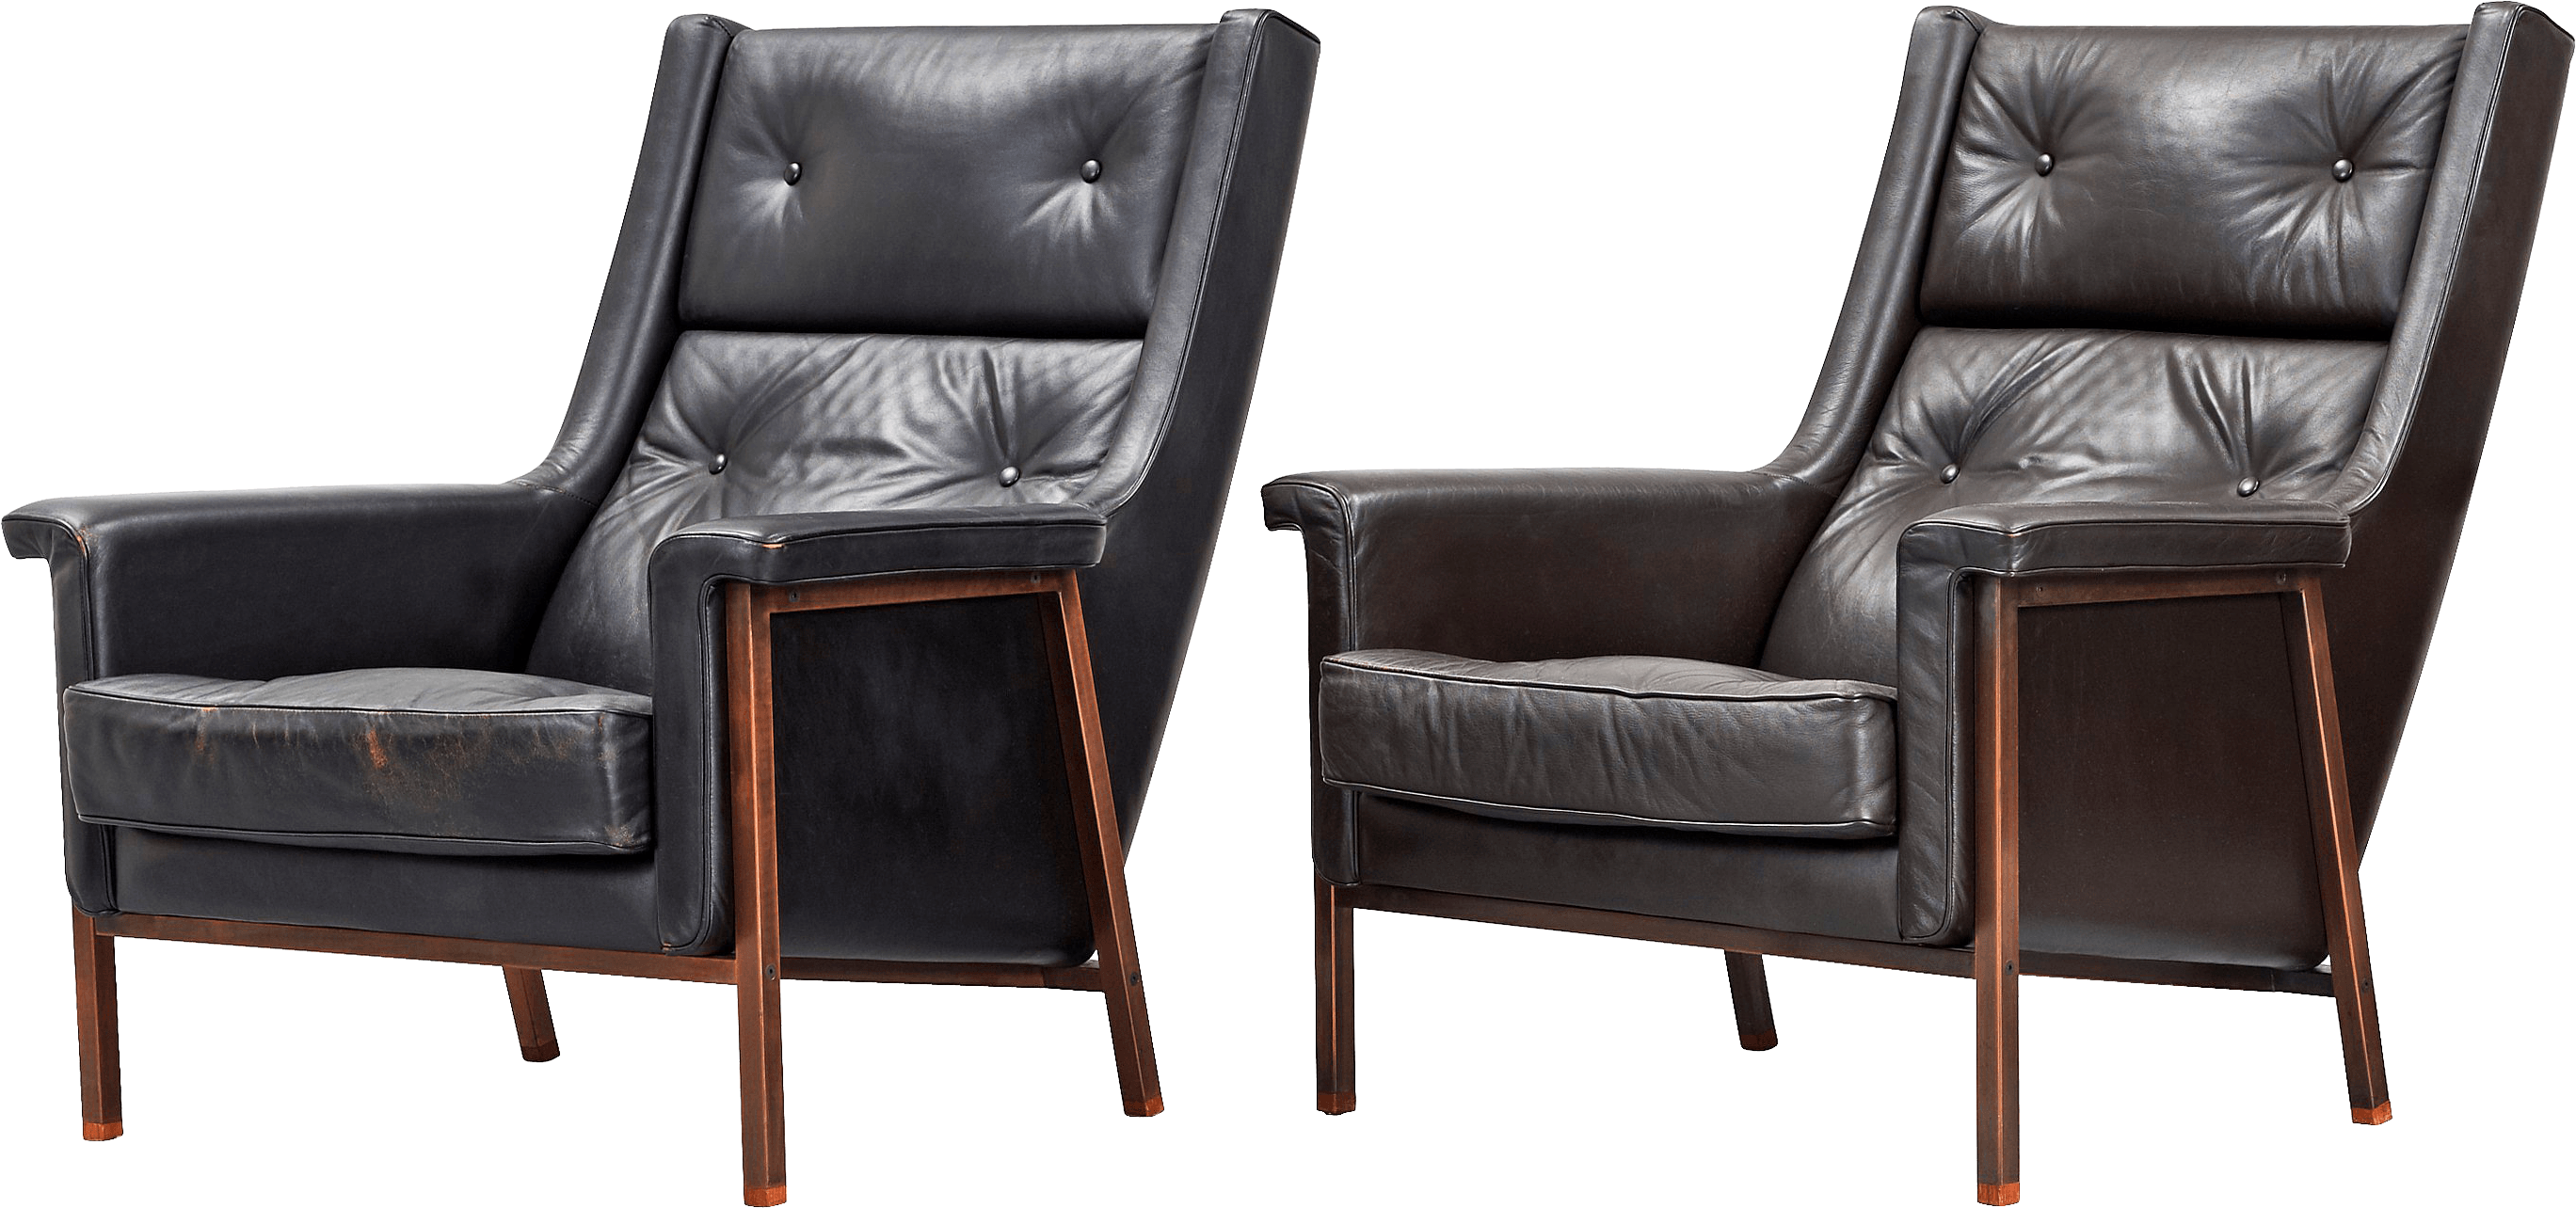 Black Armchairs Png Image PNG Image